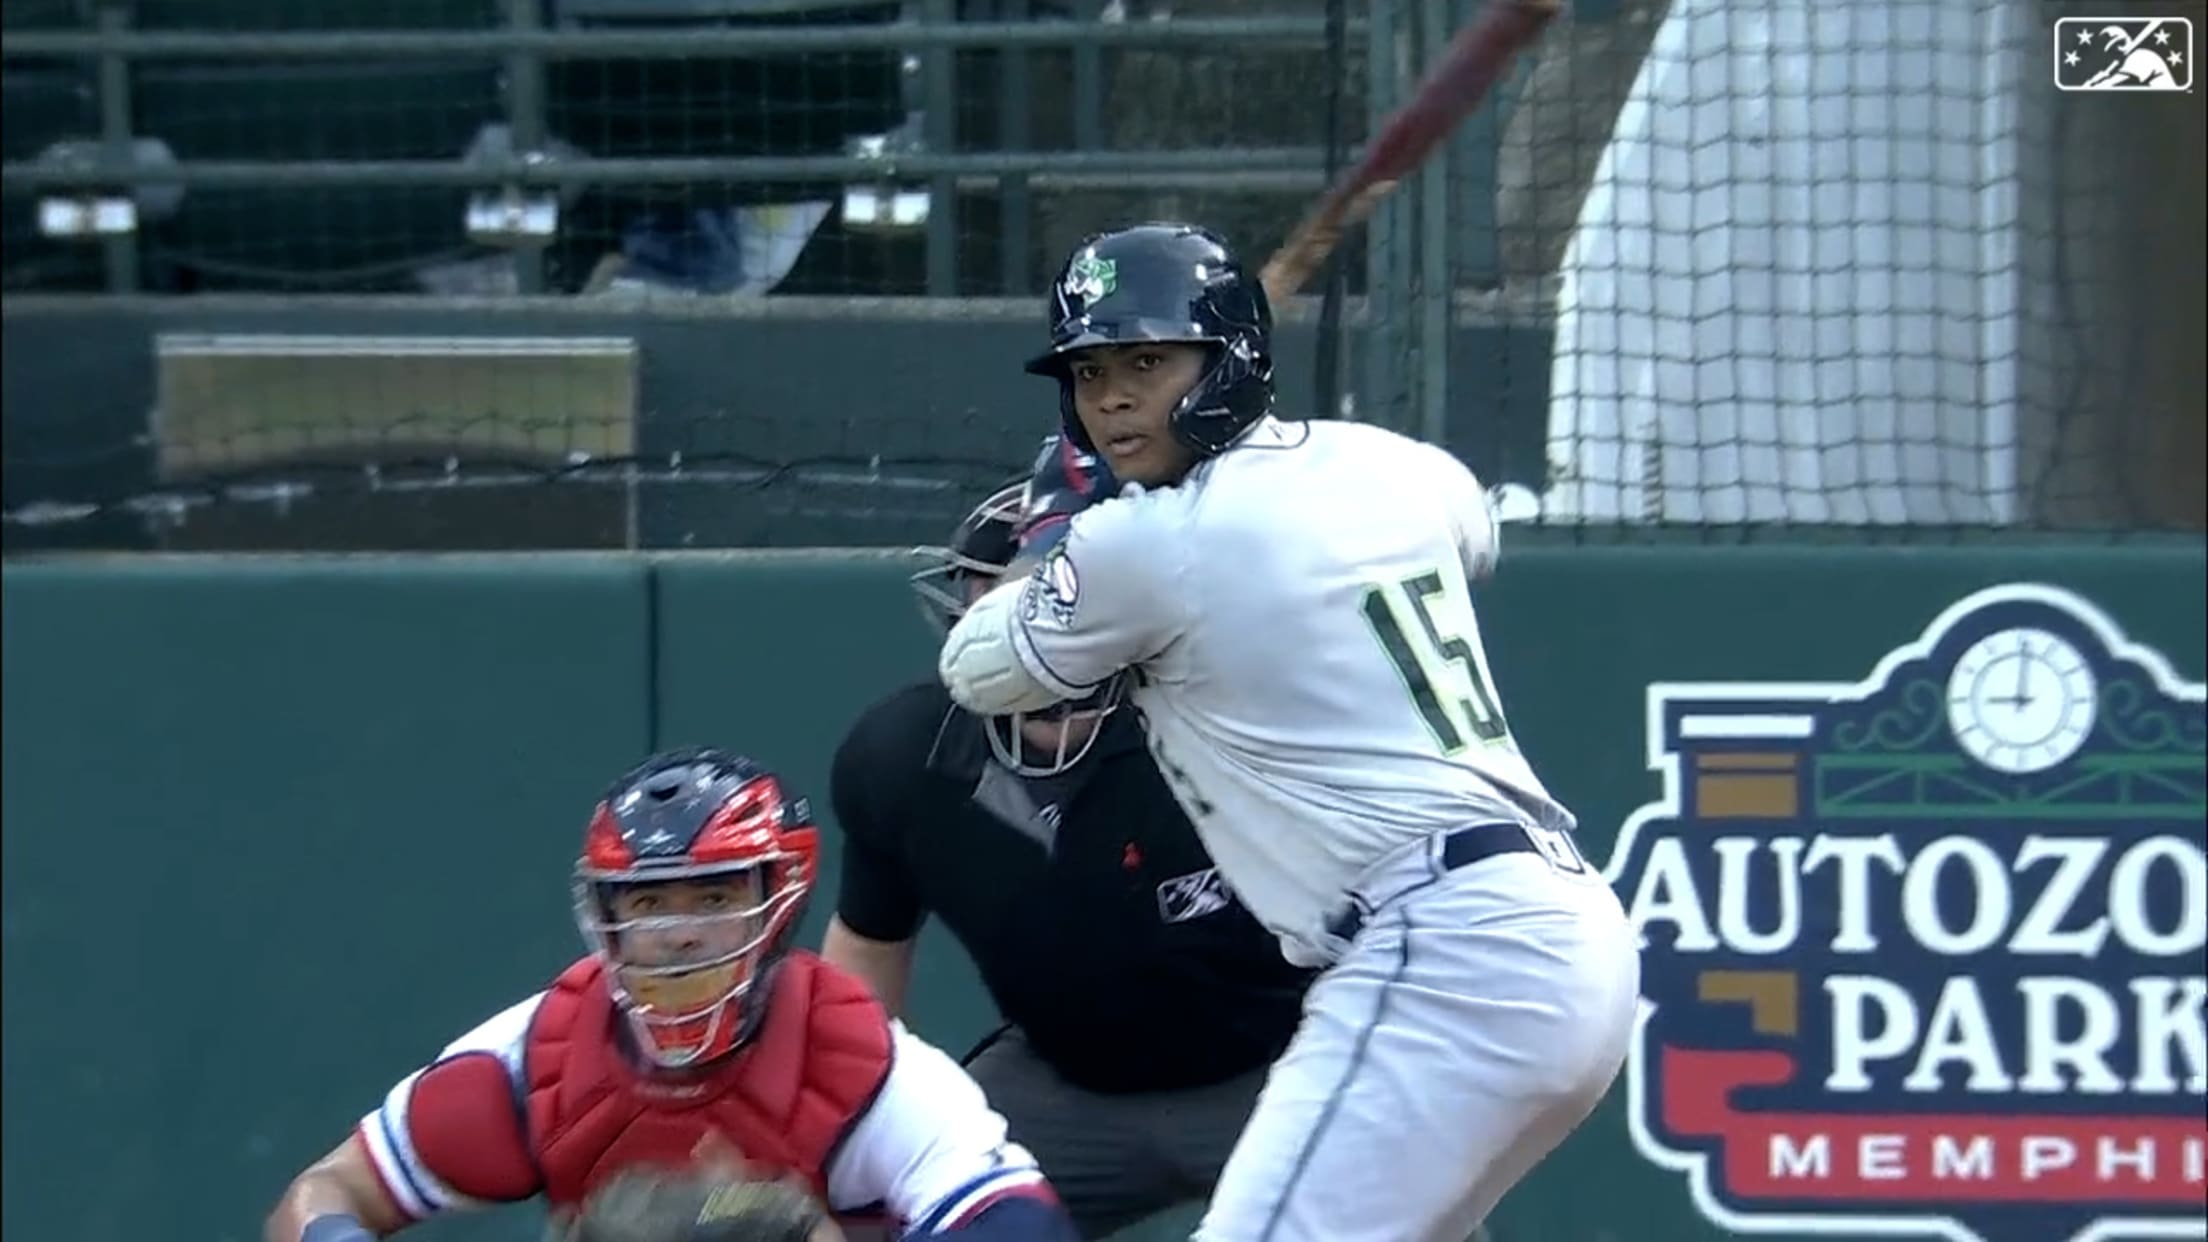 Pache belts two Triple-A homers